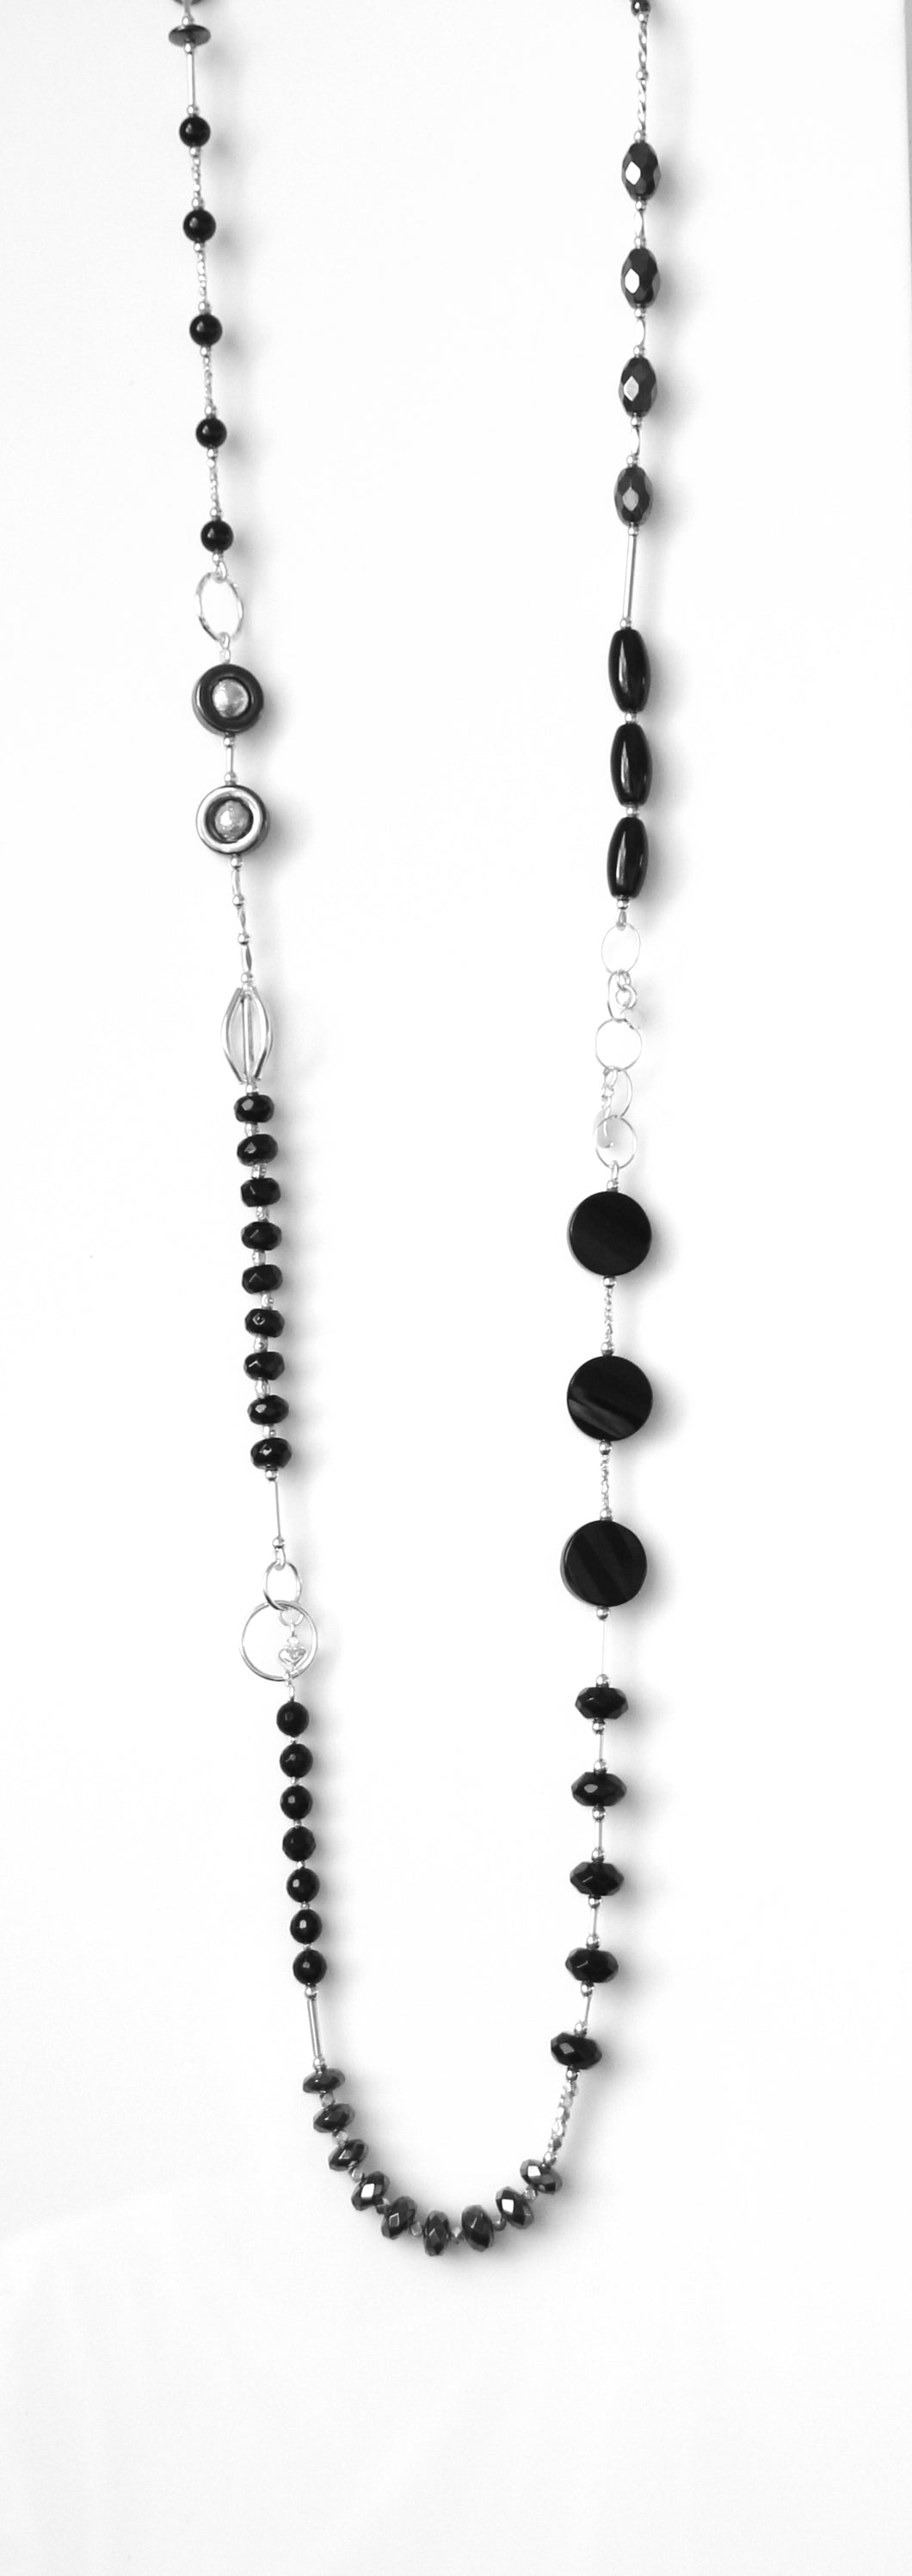 Australian Handmade Black Onyx Hematite Agate and Sterling Silver Necklace